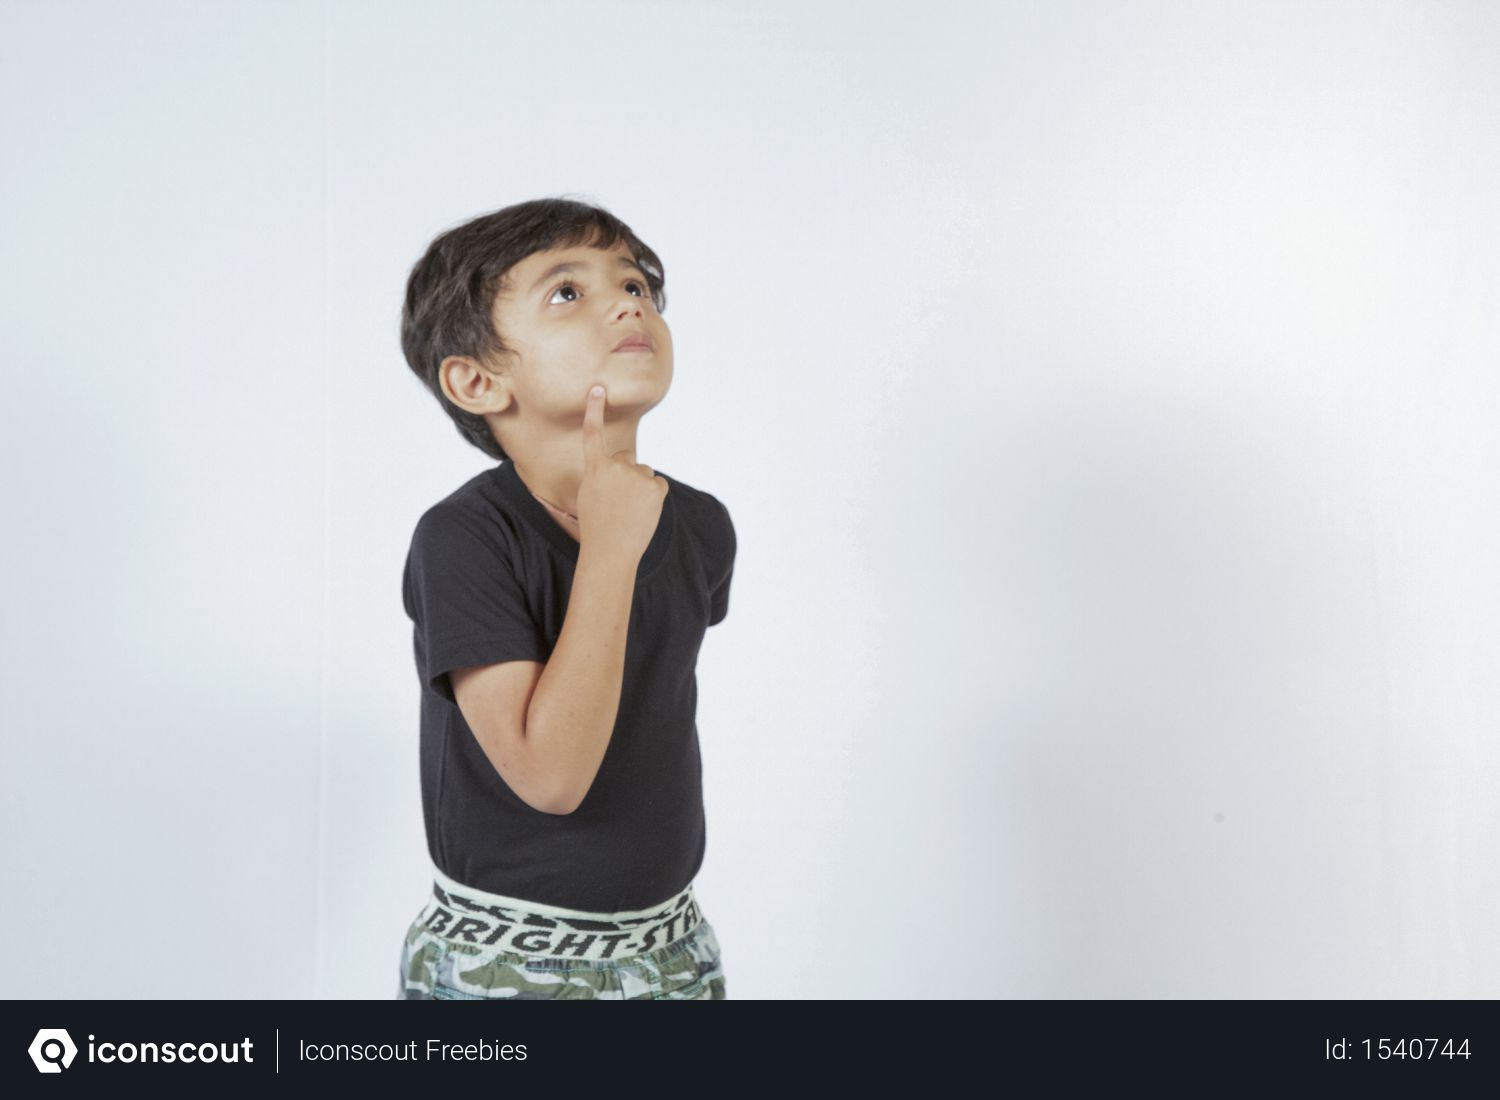 Free Cute Little Boy Watching Up And Thinking Photo Download In Png Jpg Format Thinking Photos Cute Little Boys Boys Watches